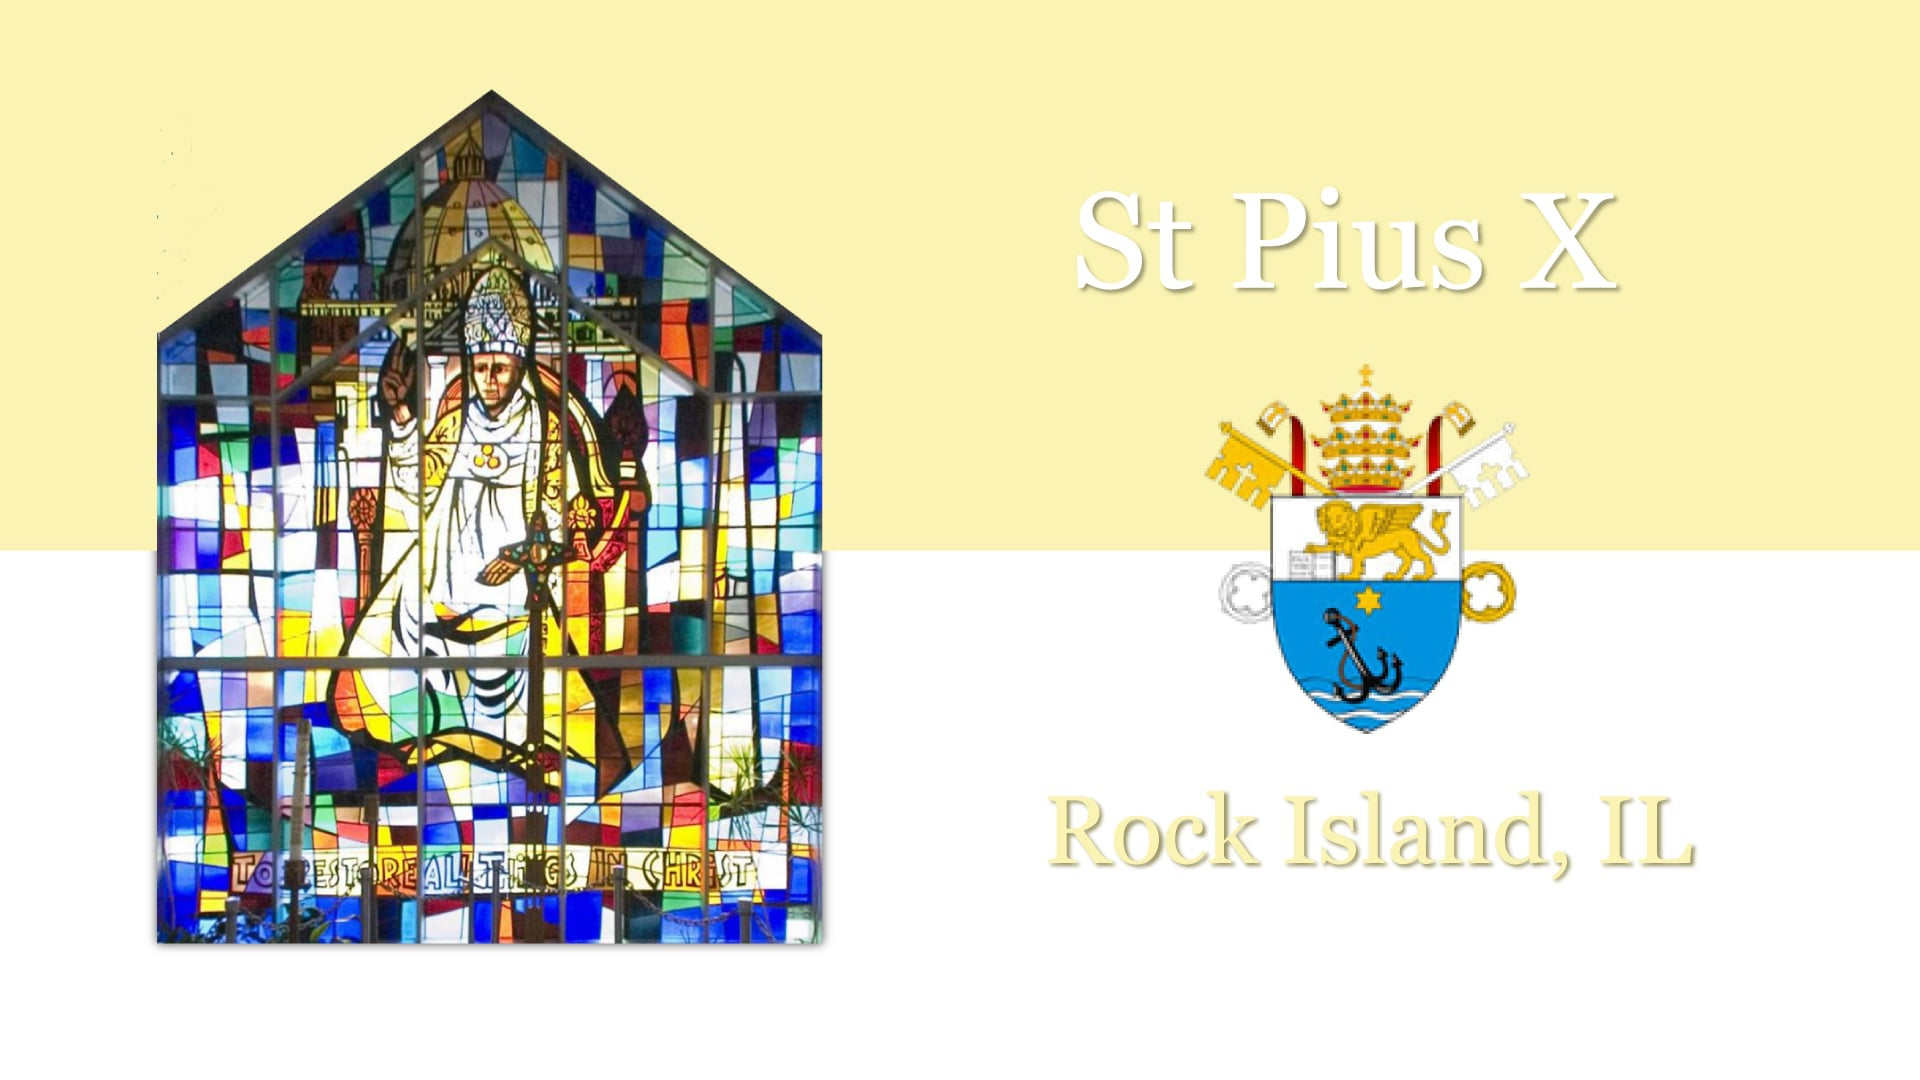 Second Sunday of Easter, April 11th, St Pius X, Rock Island